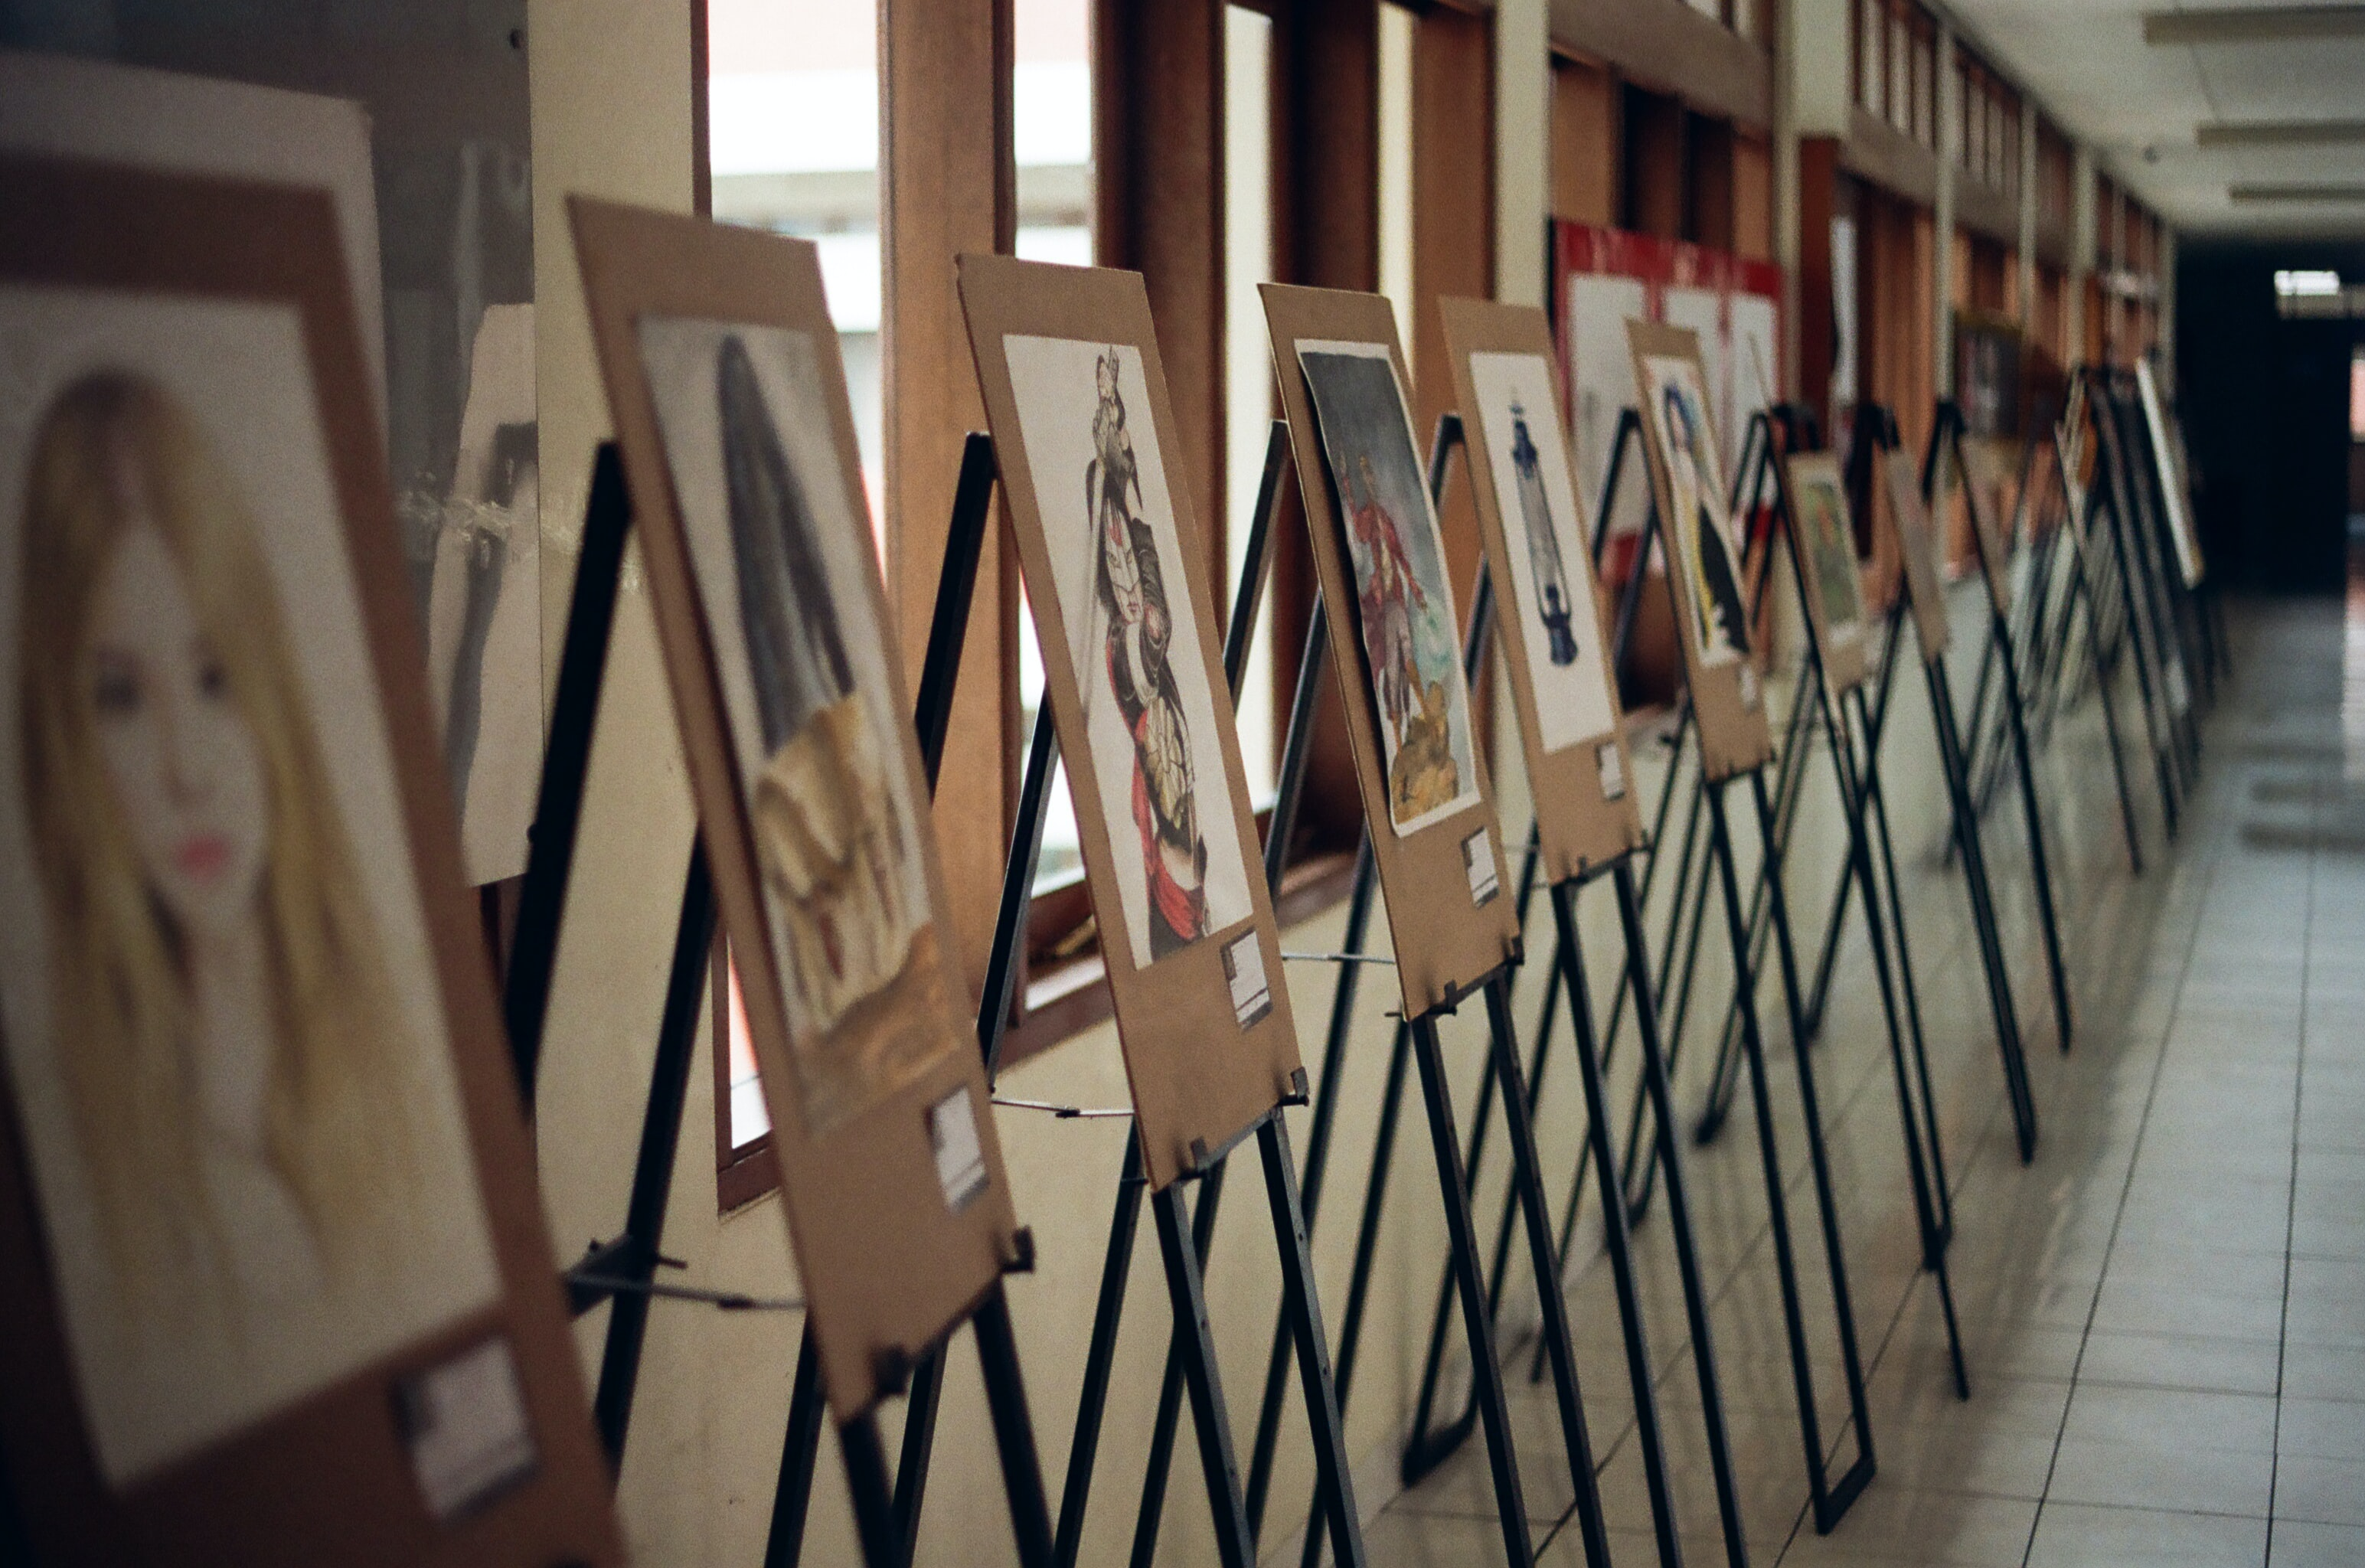 Easels holding up artwork of people and fictional characters in a long hallway